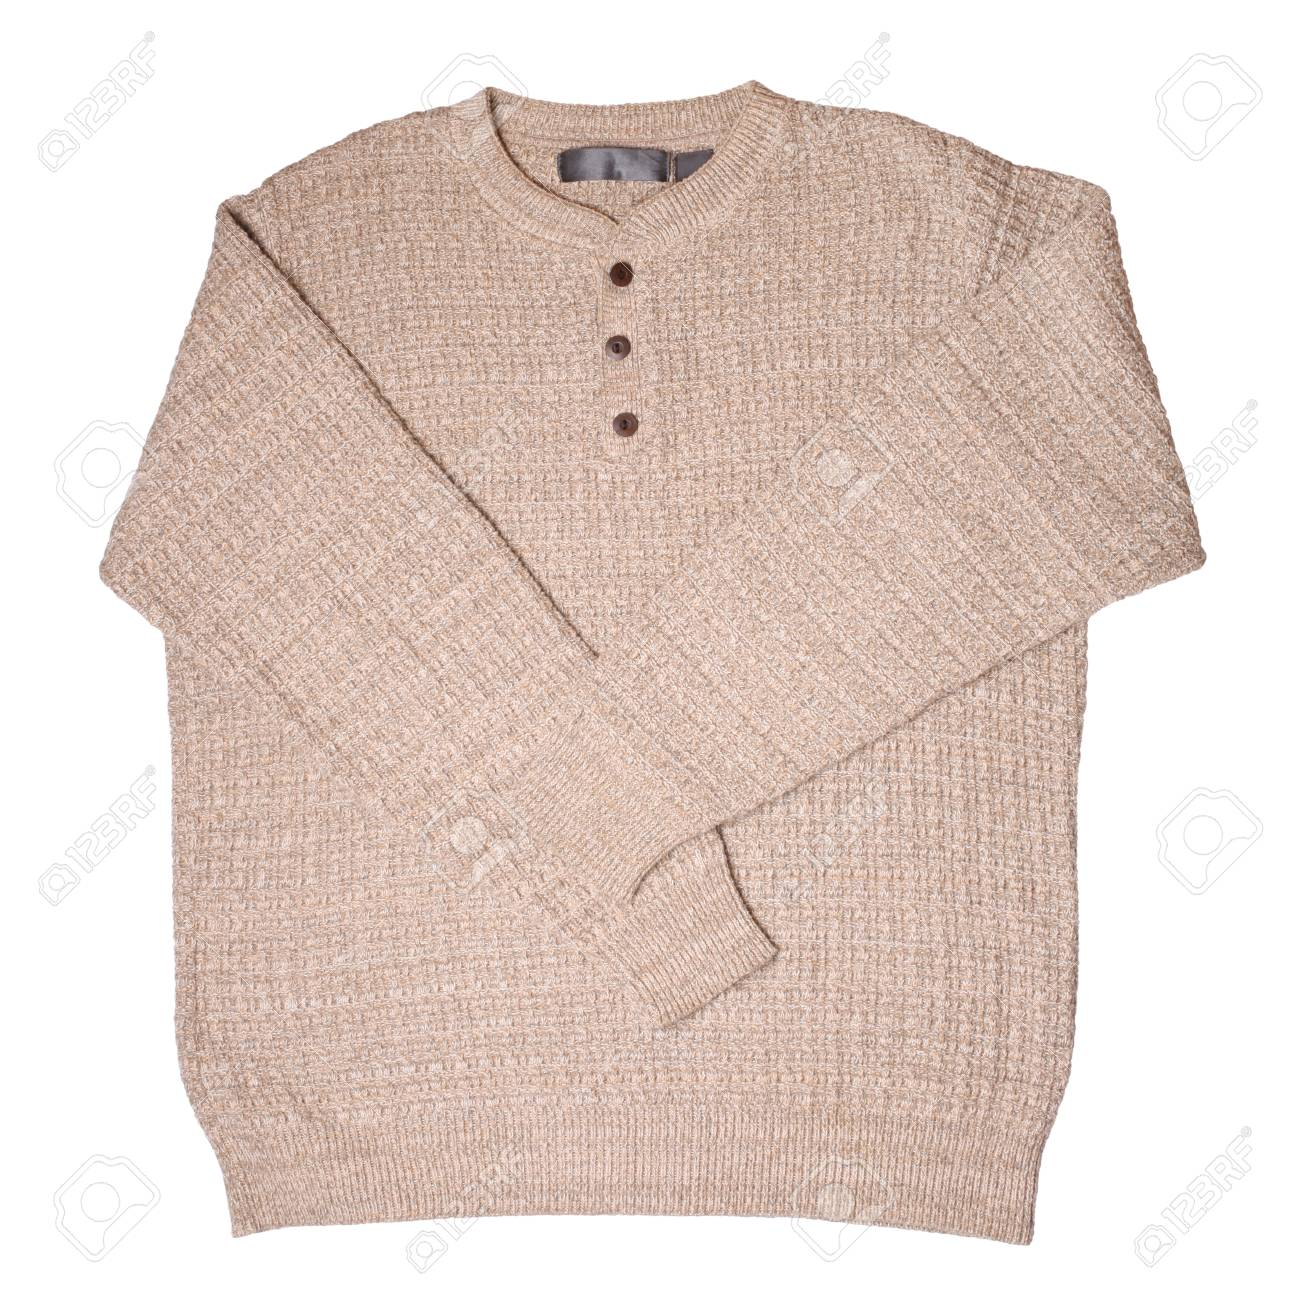 f02a8b18c8ca Beige Sweater Isolated On White Stock Photo